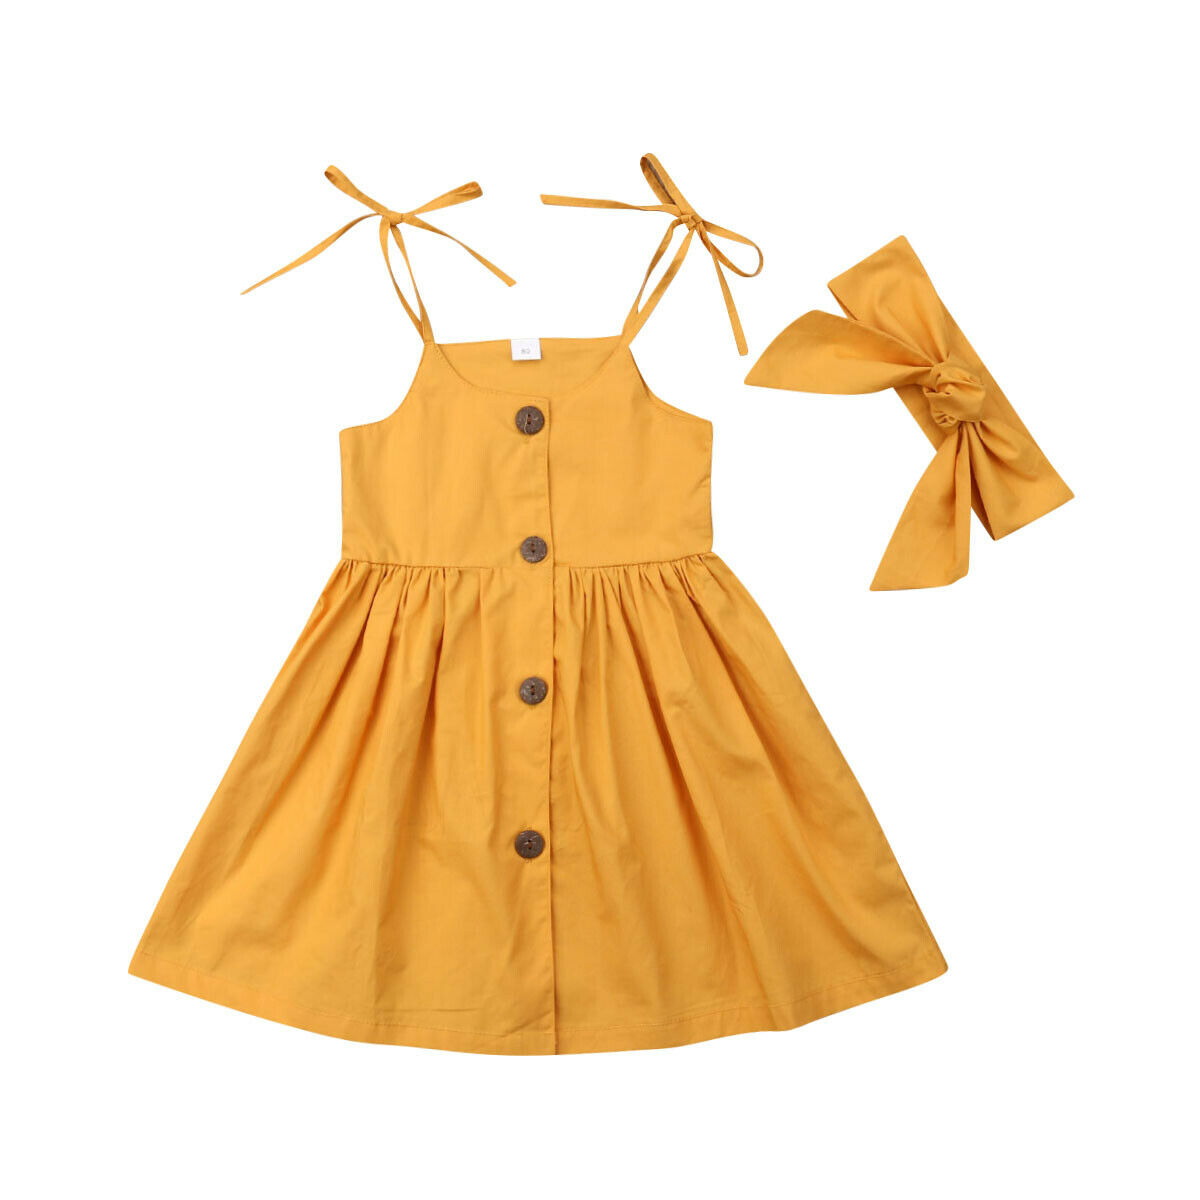 Memela Baby Clothes Toddler Baby Girls Clothes Sunflower Print Bow Flare Fall Long Pants Bloomers